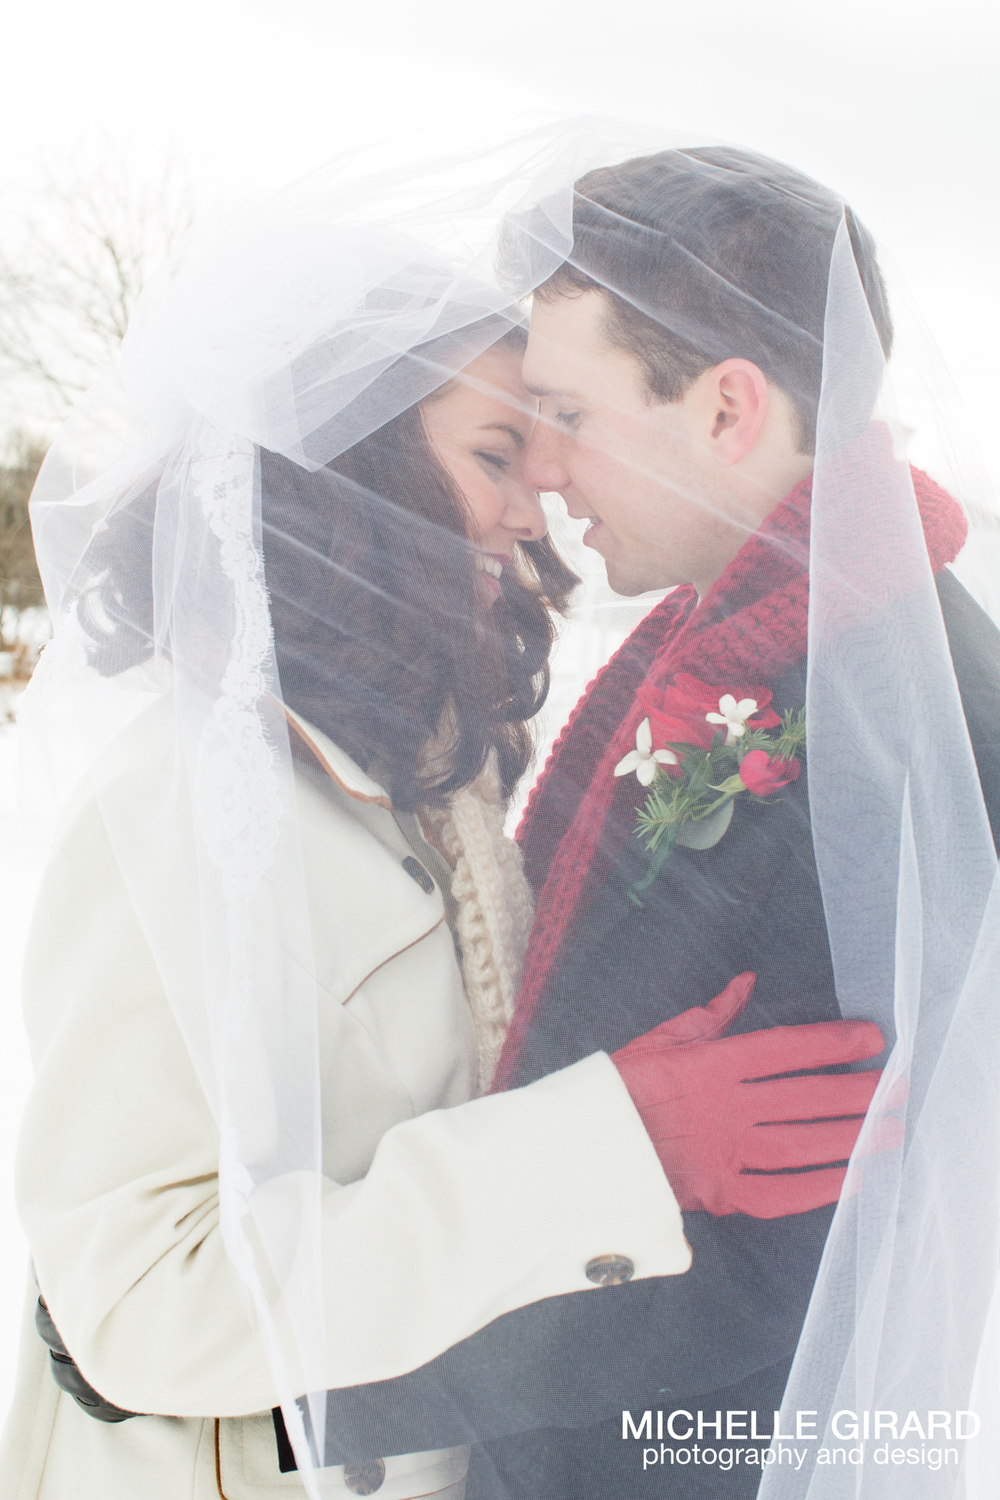 WinterWedding_SalemCrossInn_MichelleGirardPhotography30.jpg